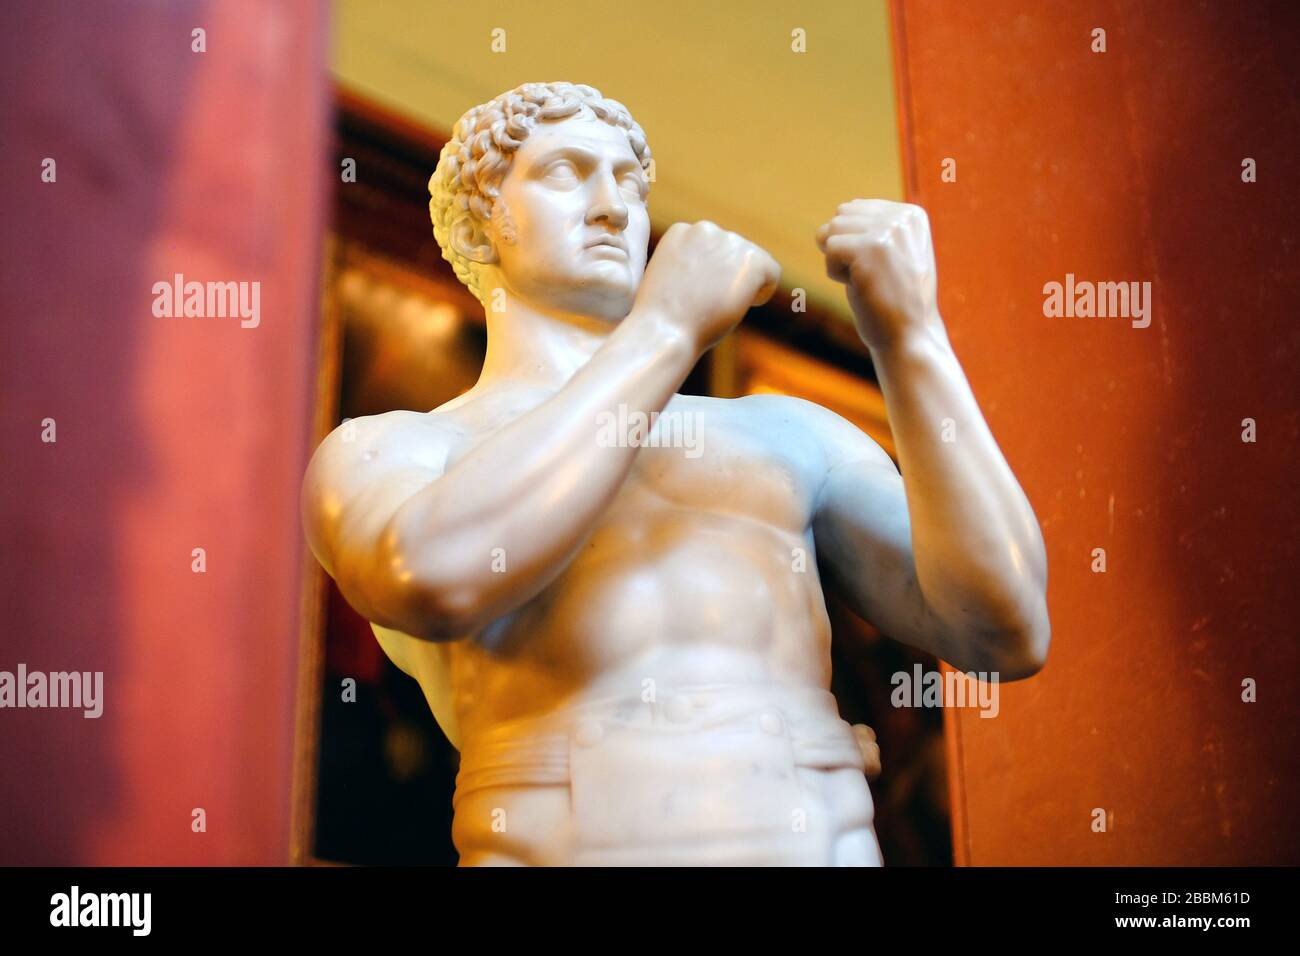 Marble sculpture of a British boxer, or pugilist, in classical pose Stock Photo